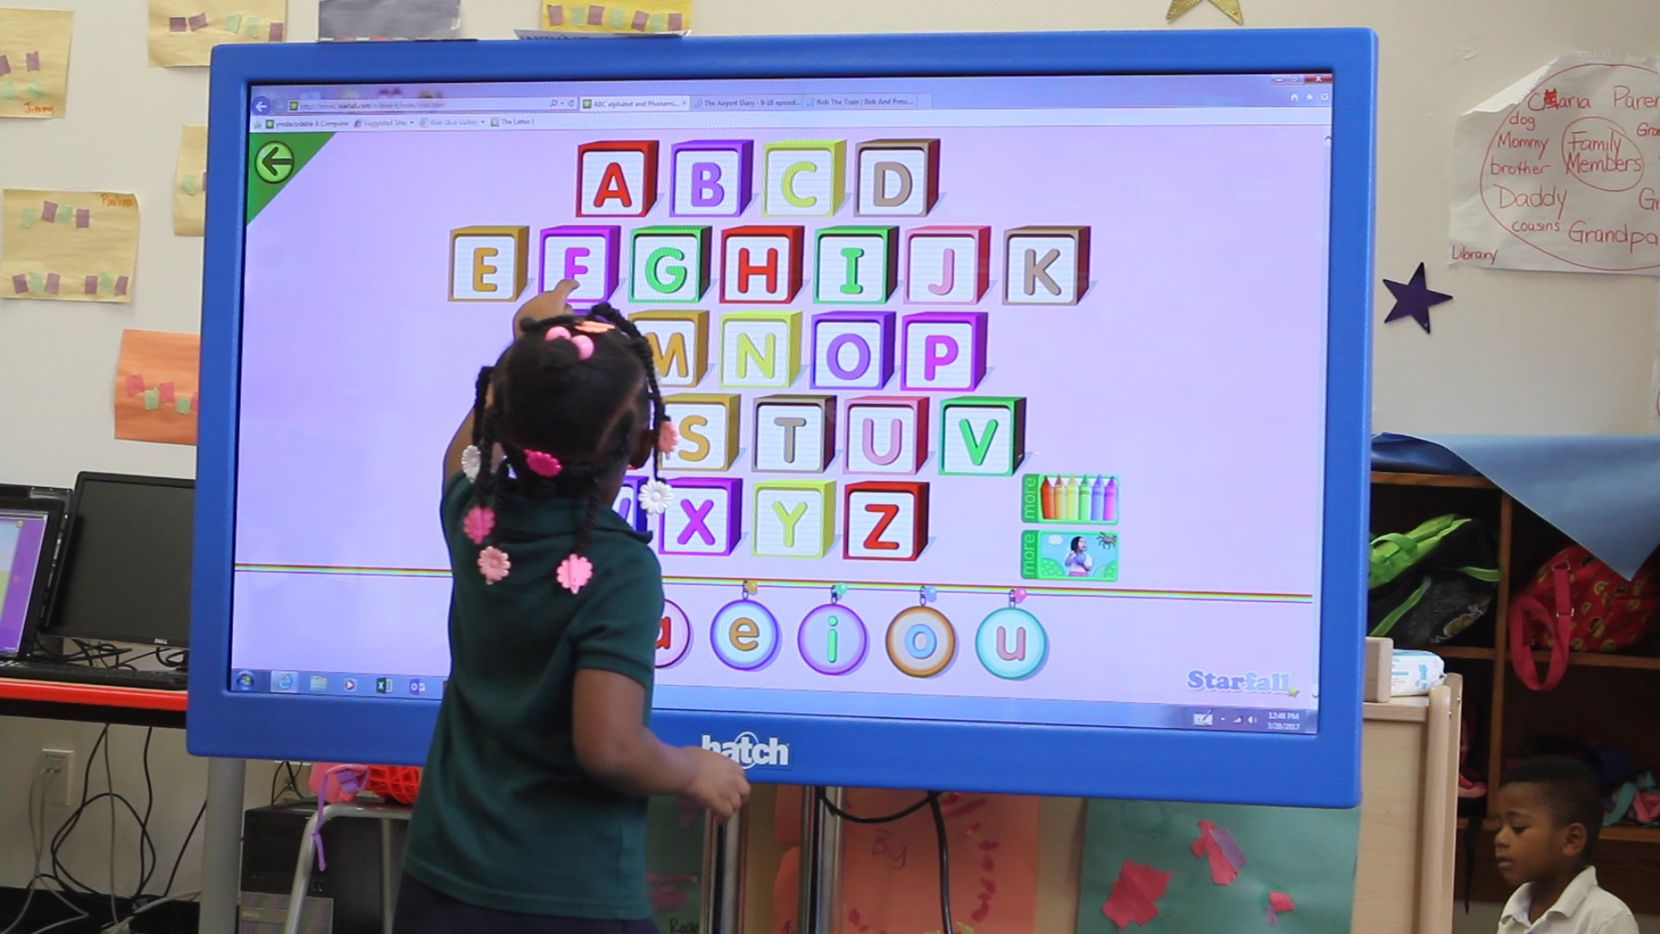 A student at Harllee Early Childhood Center interacts with educational software on a touchscreen computer on Tuesday March 28, 2017.